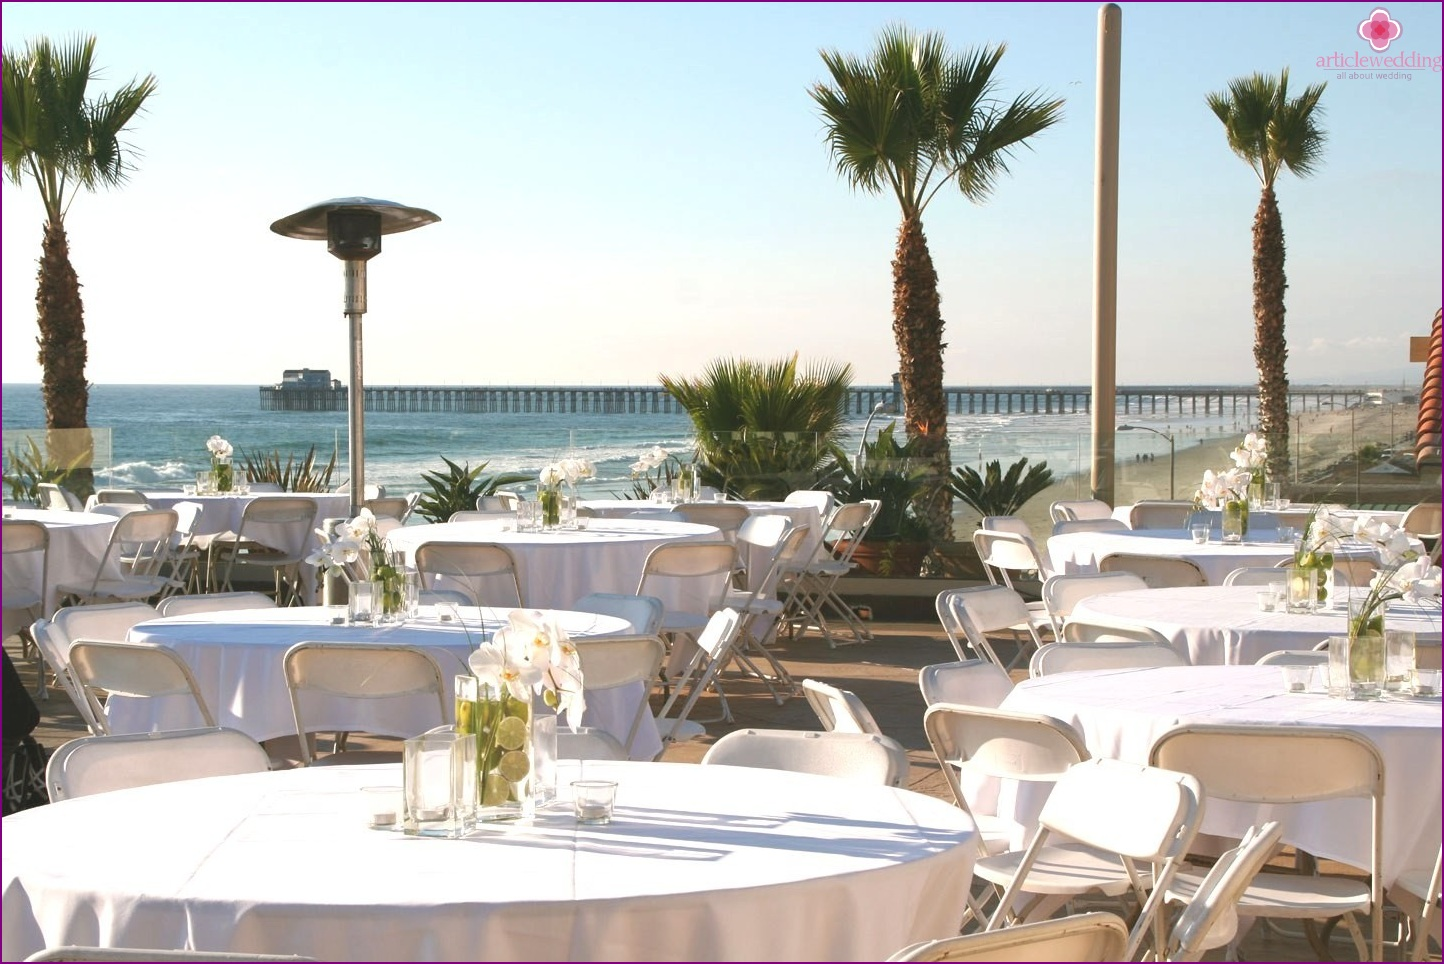 Wedding banquet on the beach